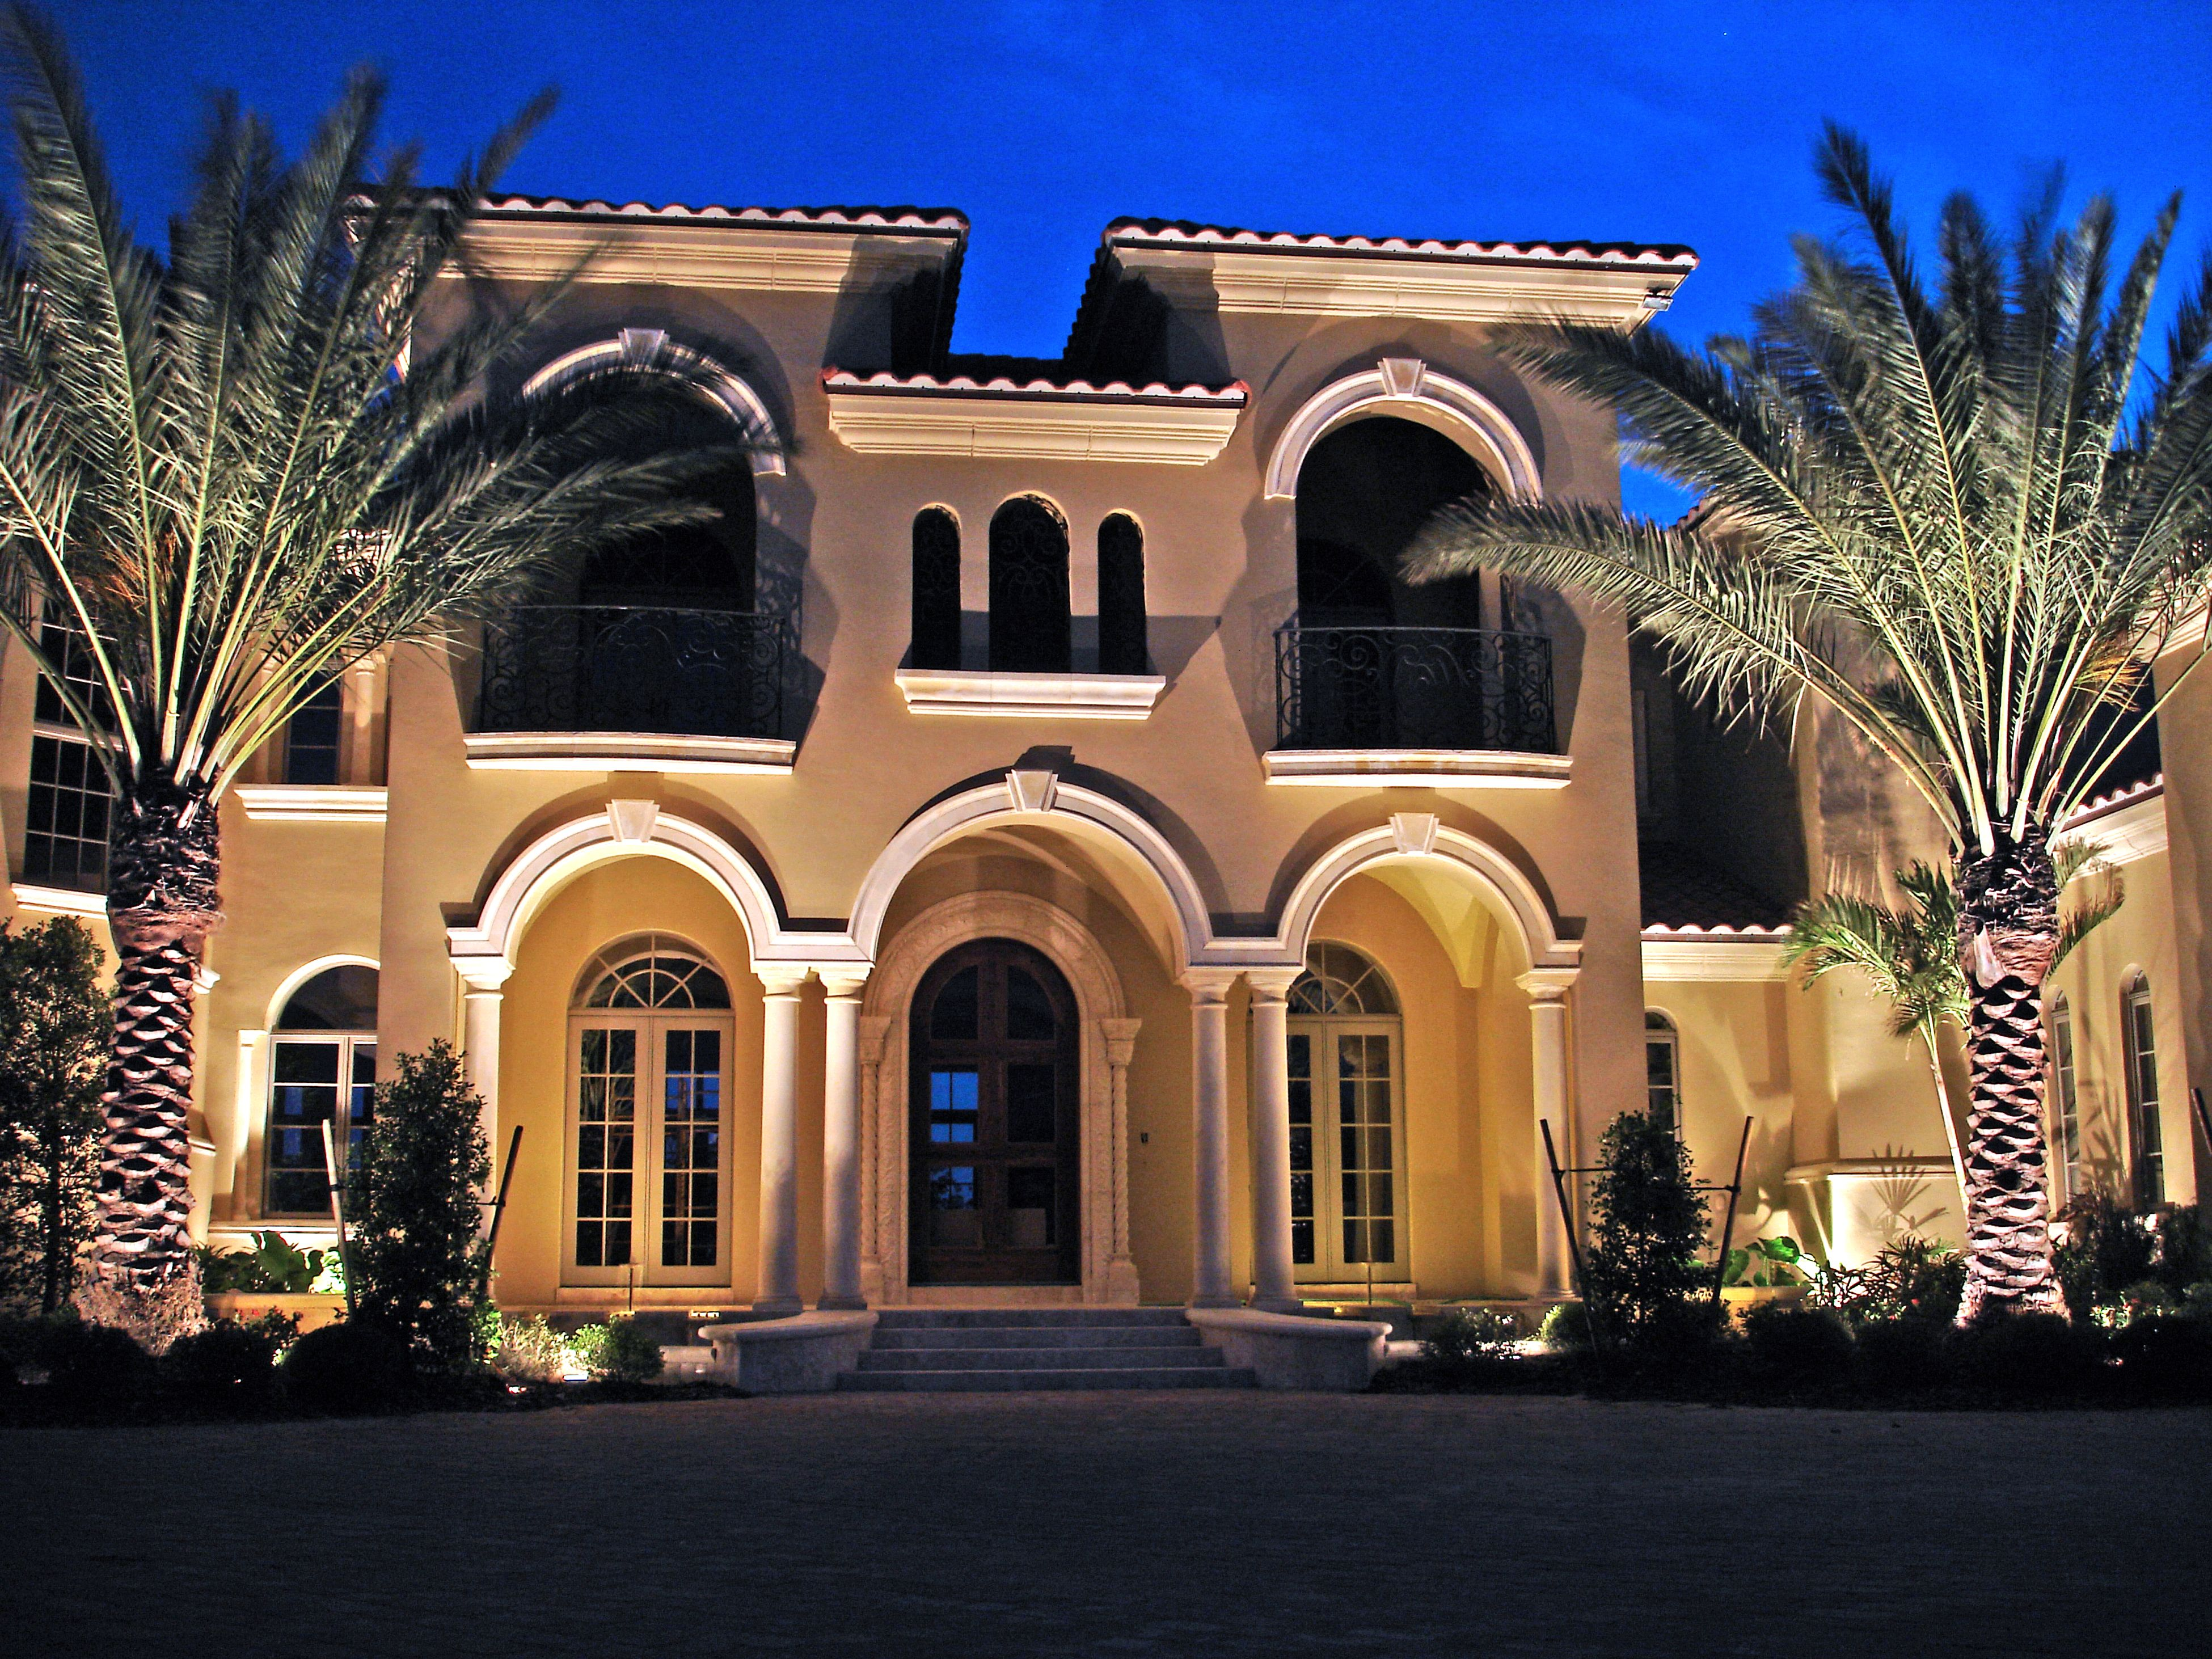 Outdoor Lighting Perspective Outdoor lighting fixtures in tampa bay outdoor lighting outdoor lighting perspectives residential outdoor and landscape lighting services are full service we design install and maintain custom lighting systems workwithnaturefo